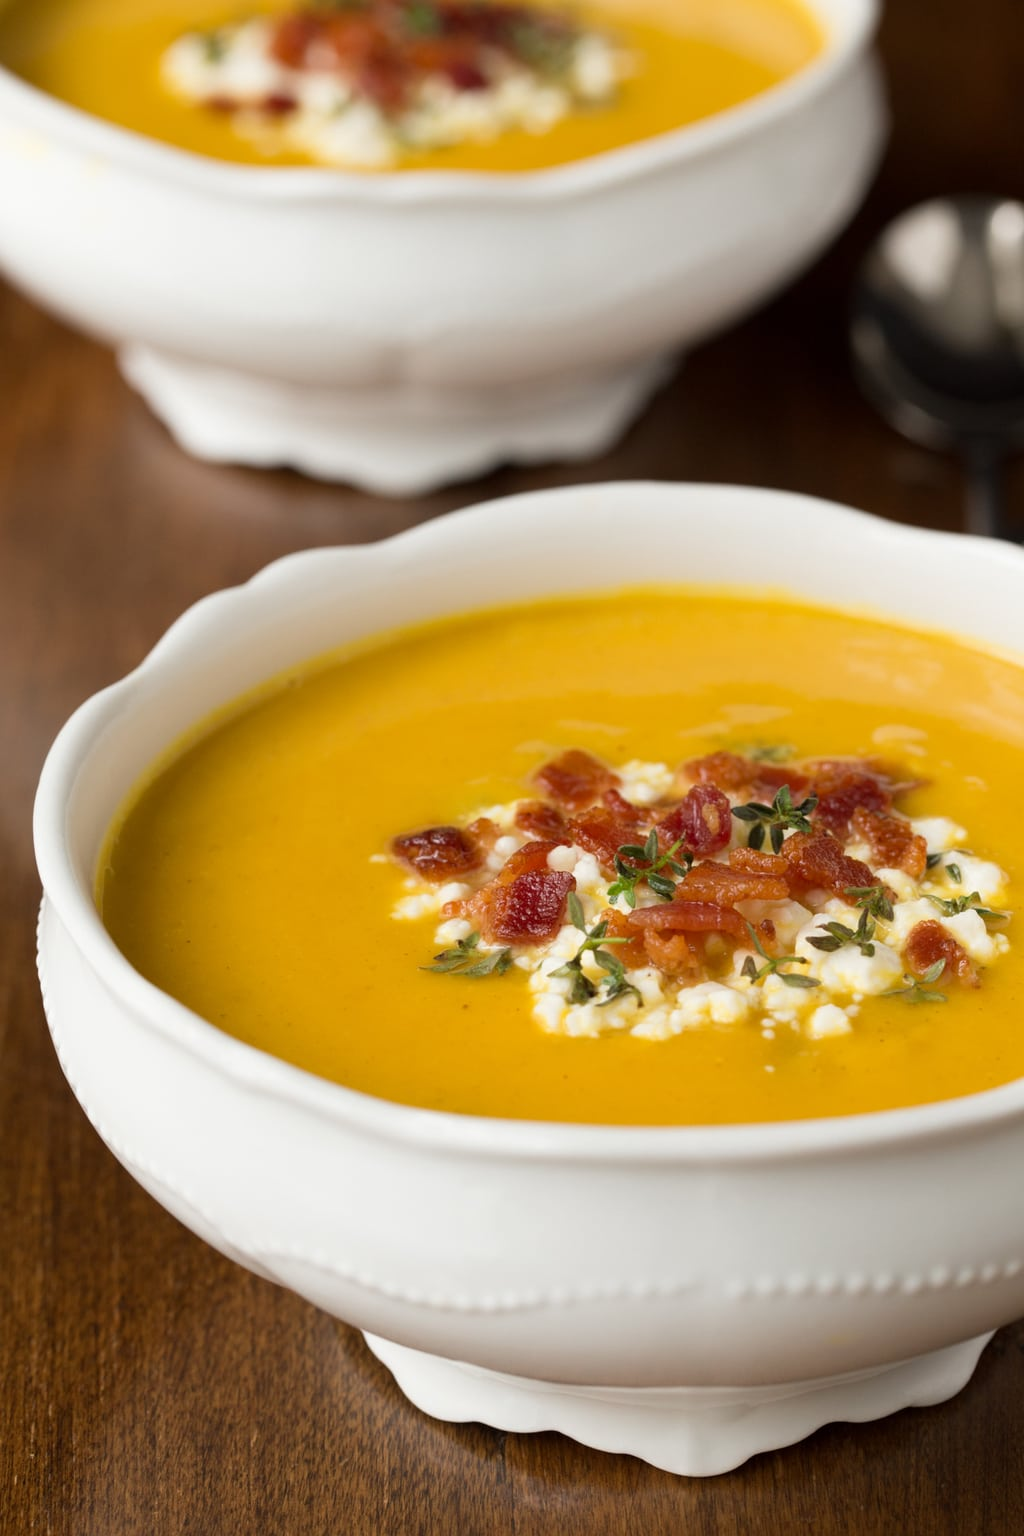 Photo of two white bowls of Butternut Squash and Bacon Soup on a wood table.